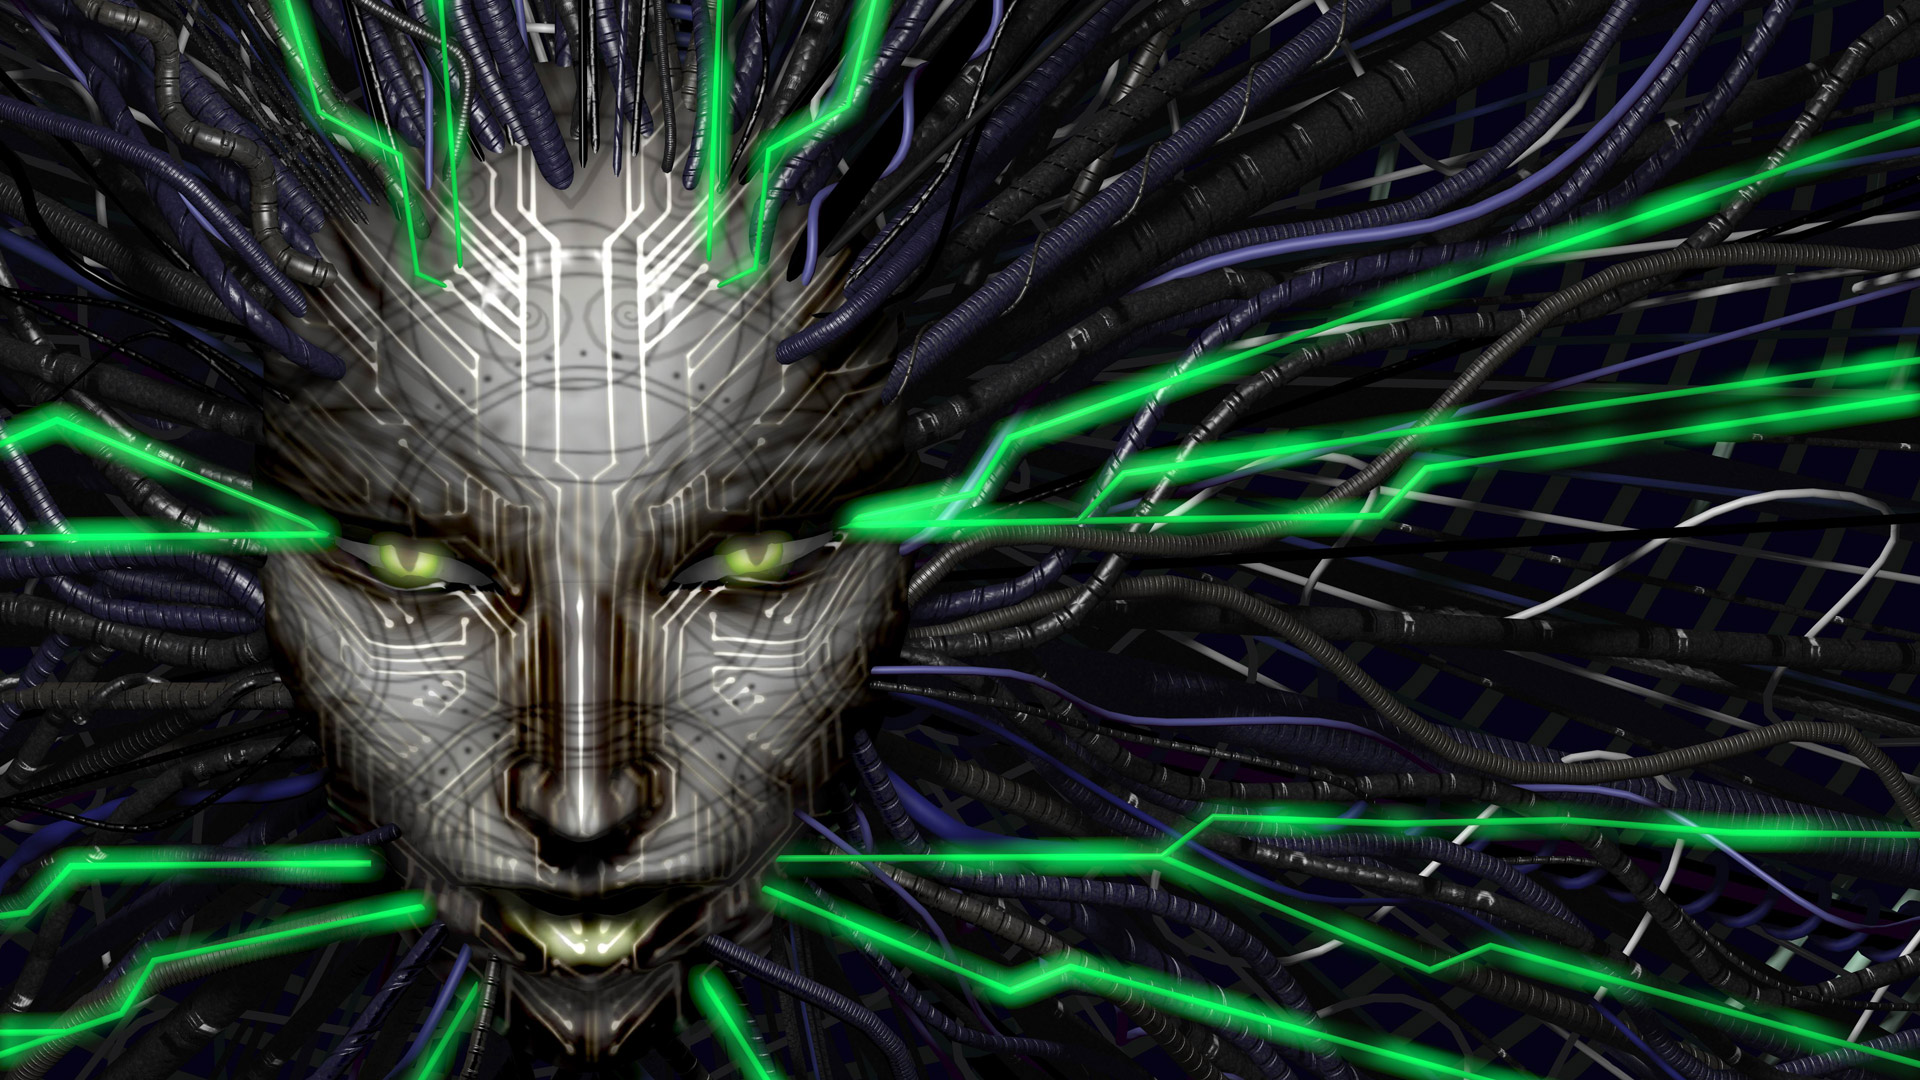 Free System Shock 2 Wallpaper in 1920x1080